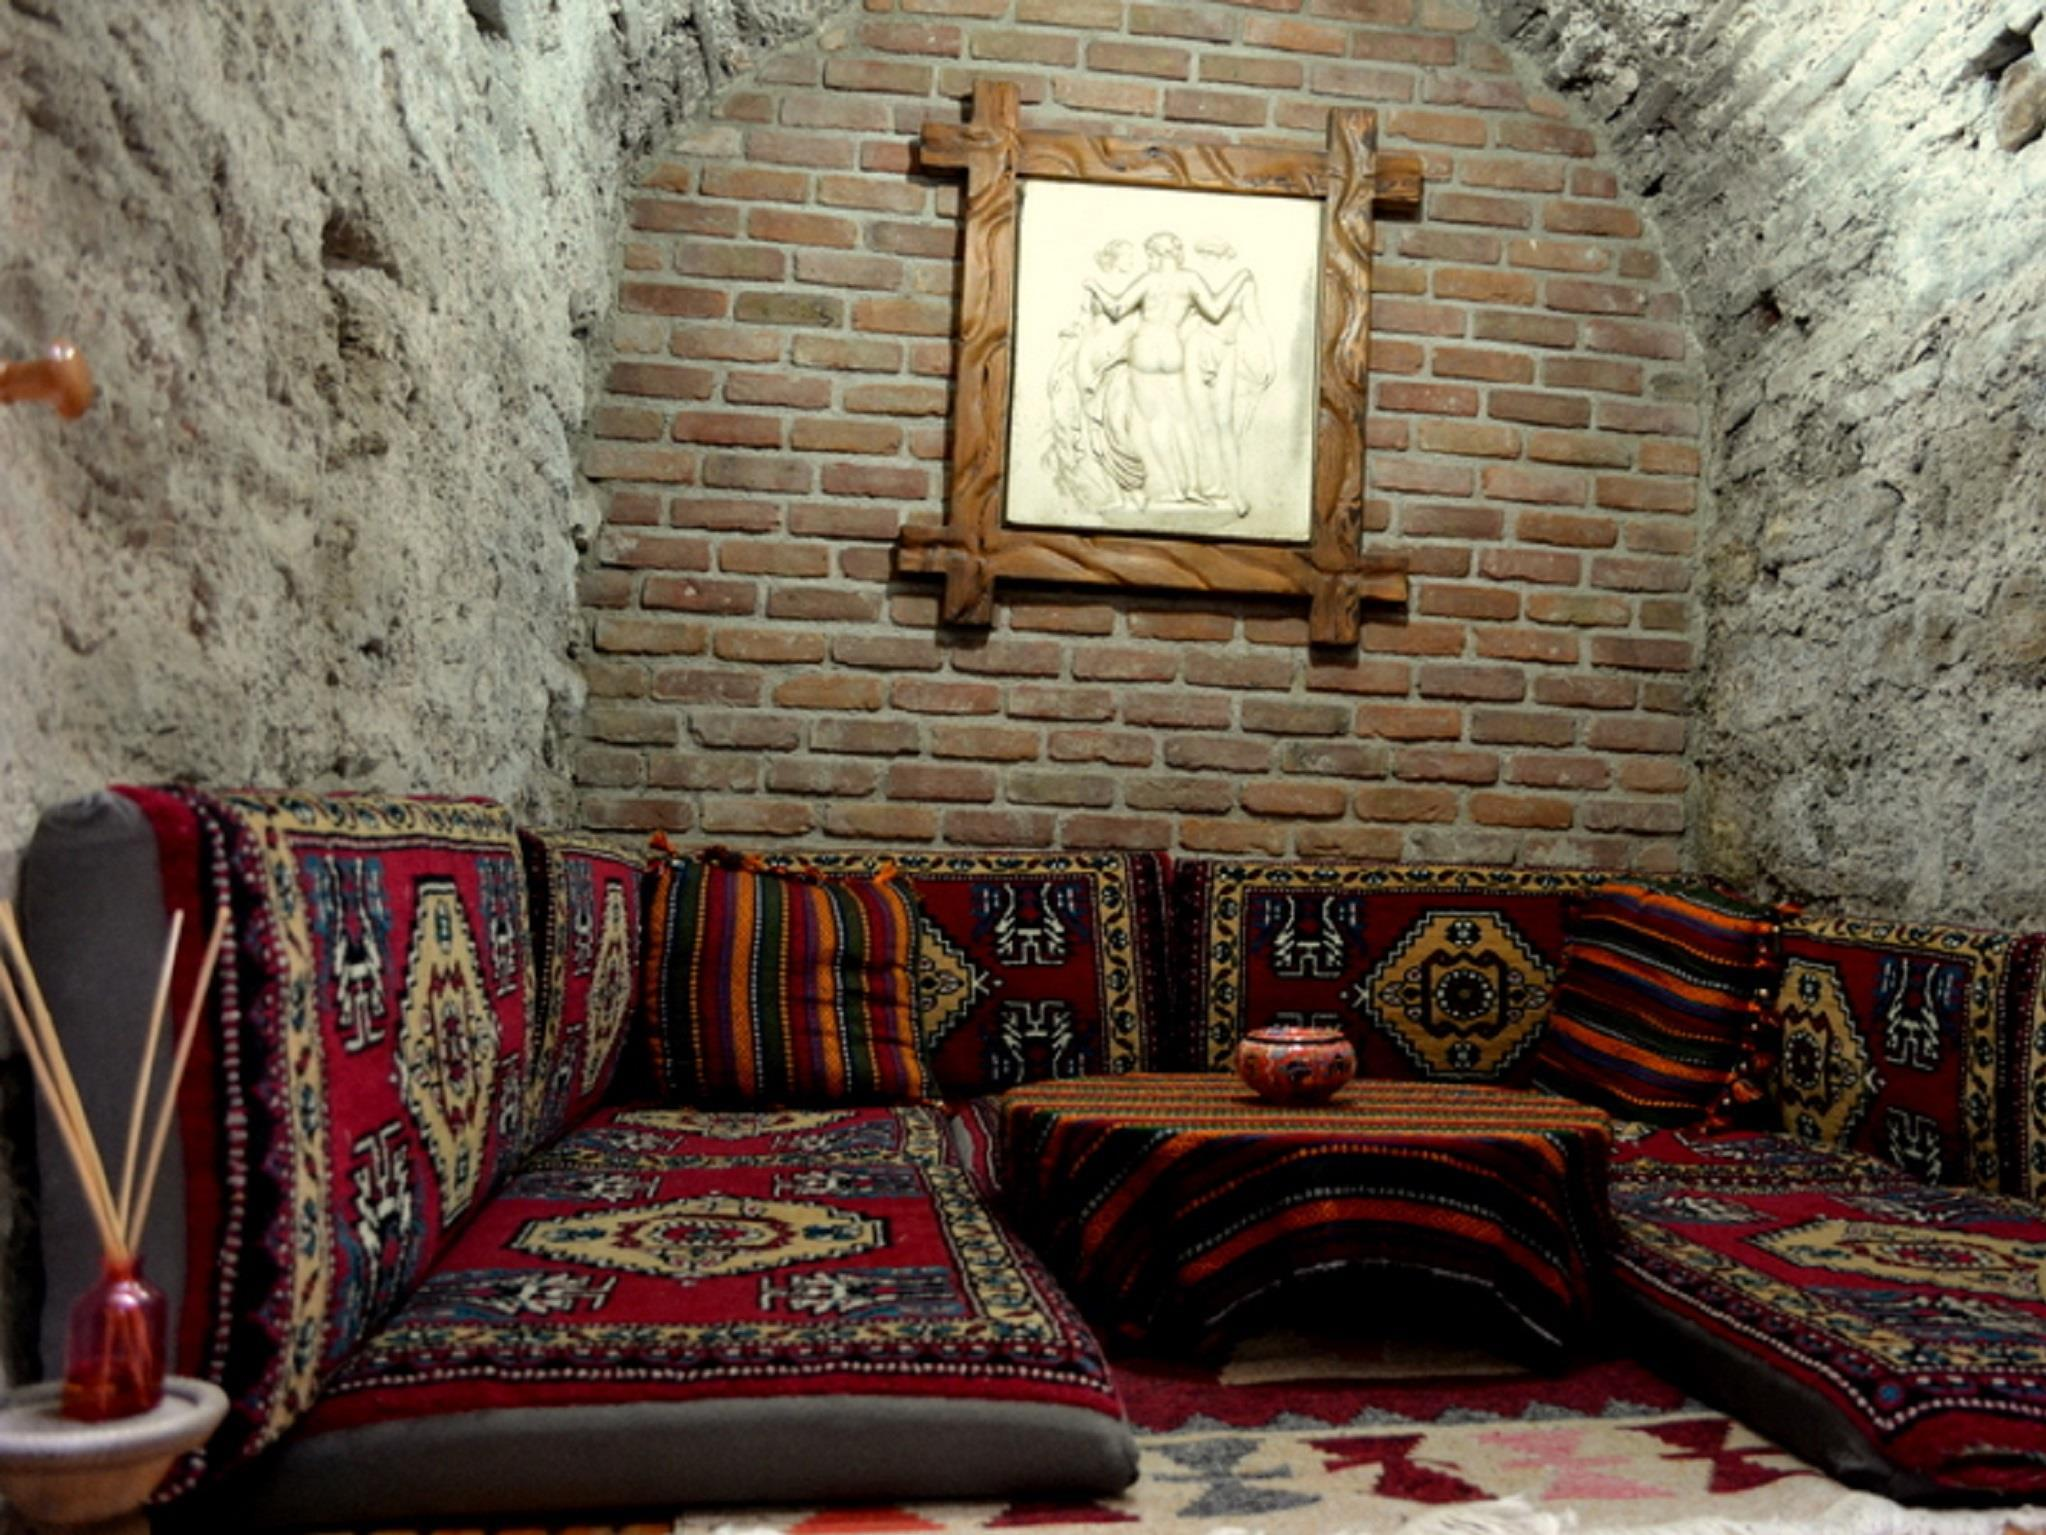 Istanbul hotels turkey great savings and real reviews for Divalis hotel istanbul